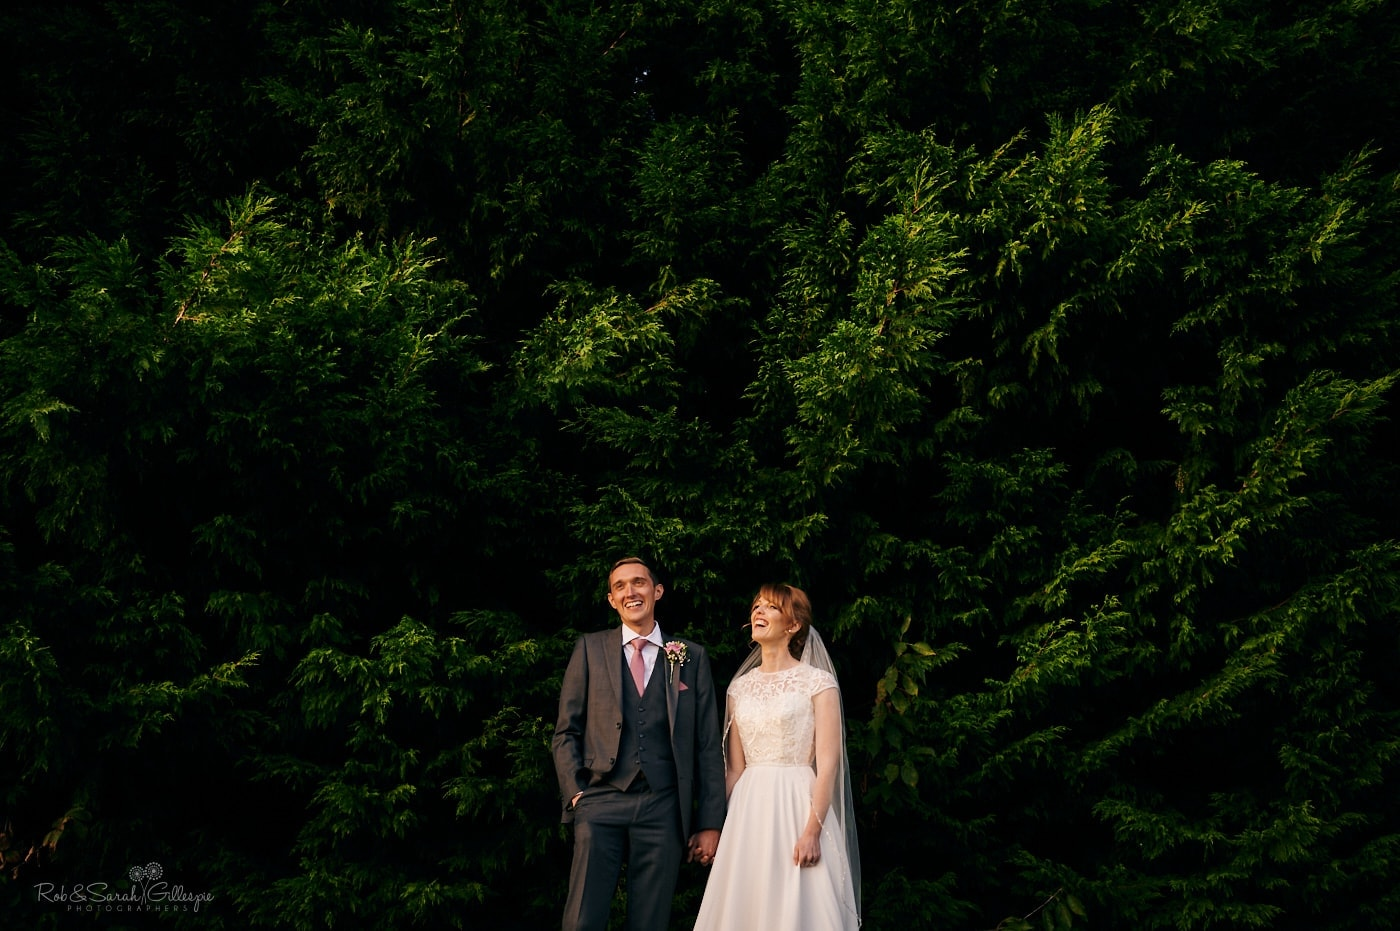 Bride and groom laughing together in front of evergreen trees